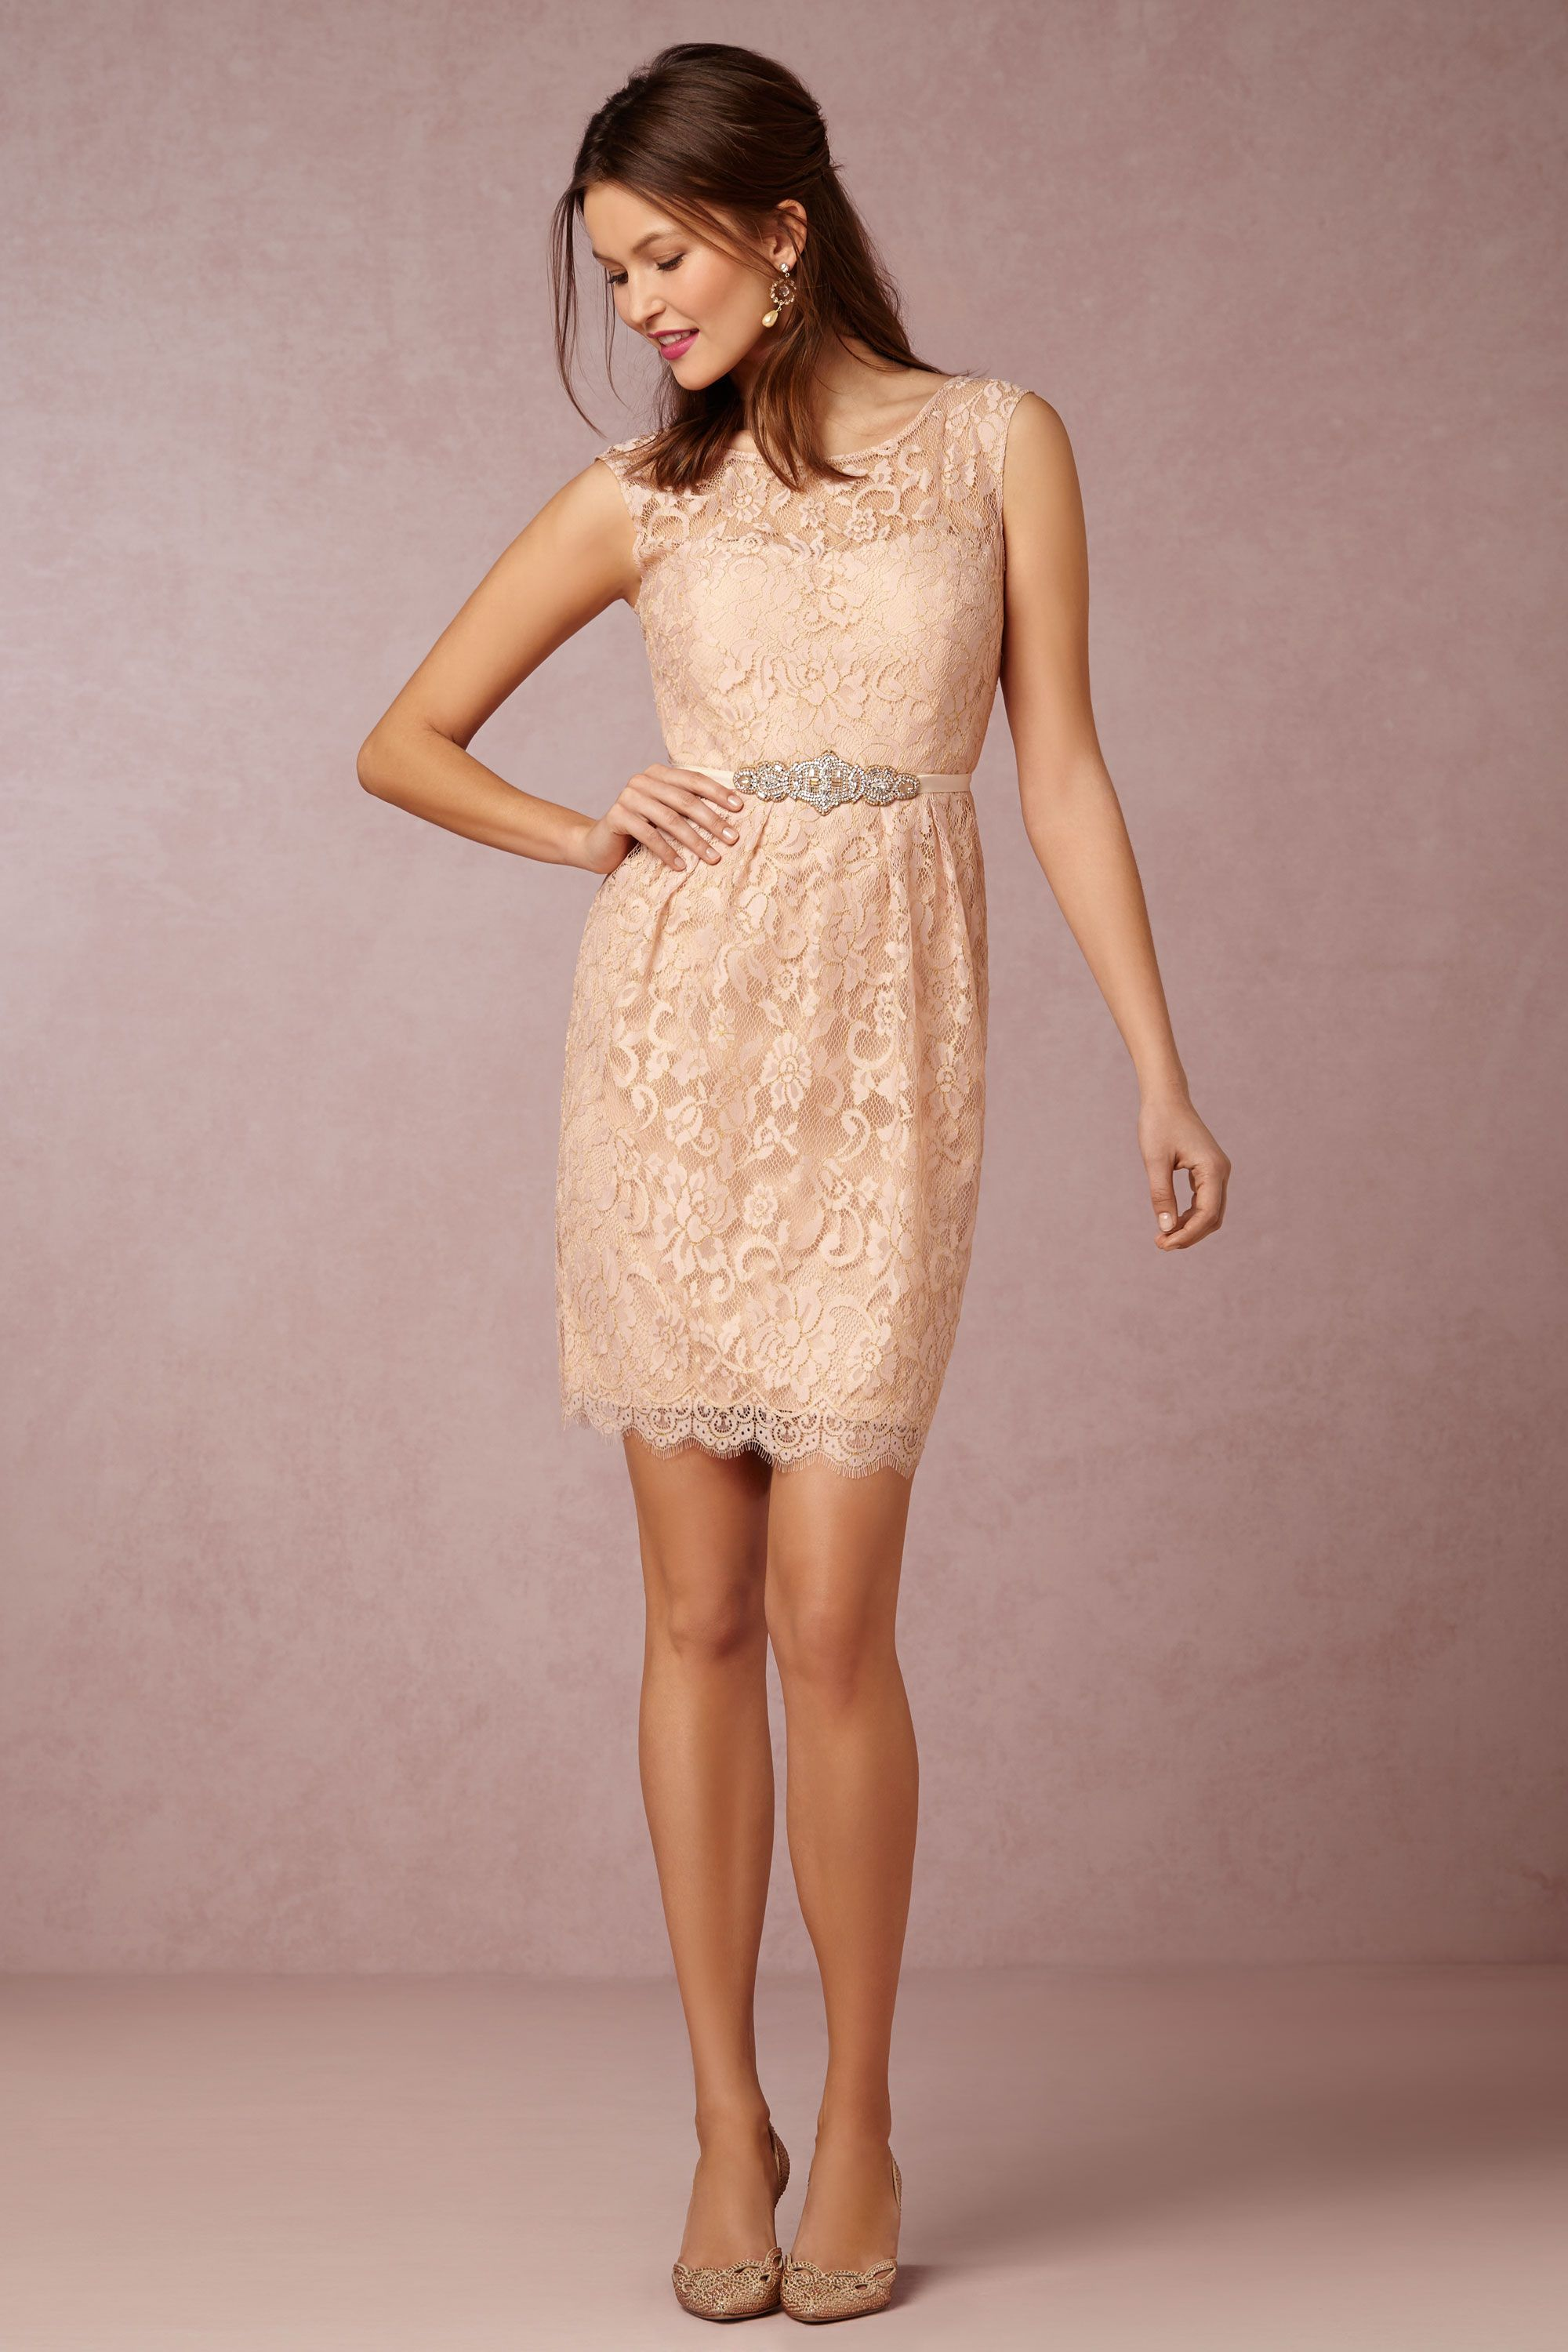 BHLDN Harlow Dress in Bridal Party Bridesmaid Dresses Lace | BHLDN ...